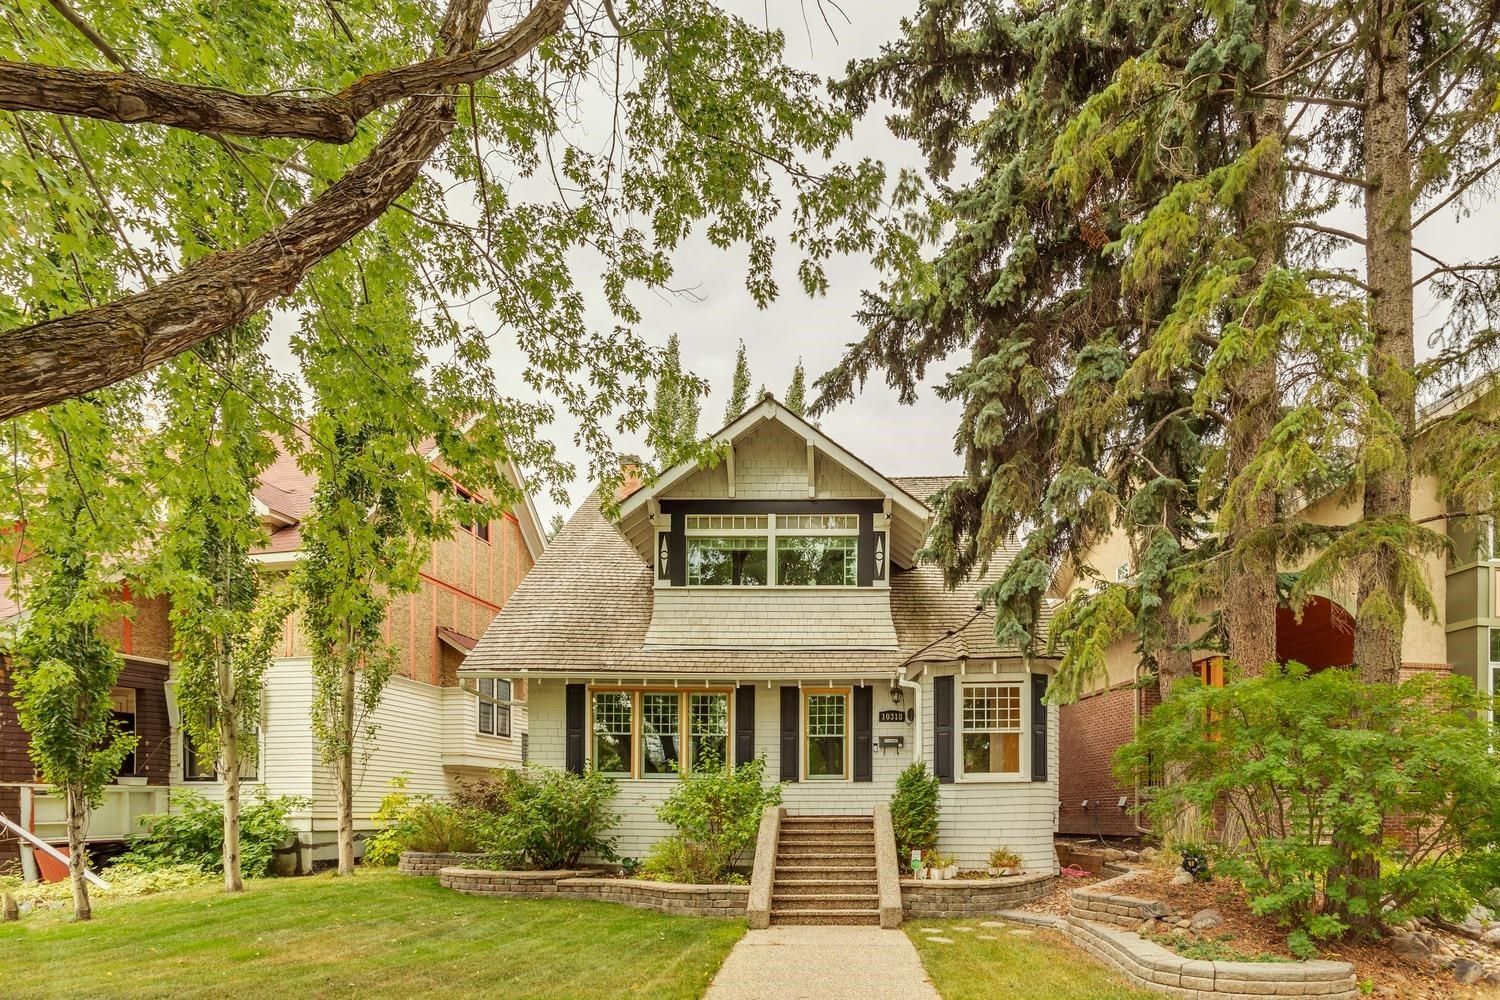 """Magnificent opportunity to live on one of Edmonton's most historic streets. """"The John Sherry Residence"""" was originally designed by architect James Henderson in 1912, and has recently been completely restored while retaining much of its original charm. This 2100+ sqft, 2.5 storey character home offers a stunning mix of distinct architecture and modern decor. The main floor features a beautiful kitchen w/granite counters, premium cabinetry, s.s. appliances, open living area w/stunning fireplace, elegant dining area, and hardwood throughout. On the upper level you will find the huge master suite with a den area, 4-pc ensuite, and plenty of closet space. Large second bedroom, and additional 5-pc bath. The top level offers an open loft/bonus area that could easily be converted to a 3rd bedroom. Recent upgrades include: electrical, mechanical, plumbing, kitchen, bathrooms, flooring, roof, windows, paint, fixtures, double garage, and more. Located steps from the Downtown core, 124th st, and the River Valley."""